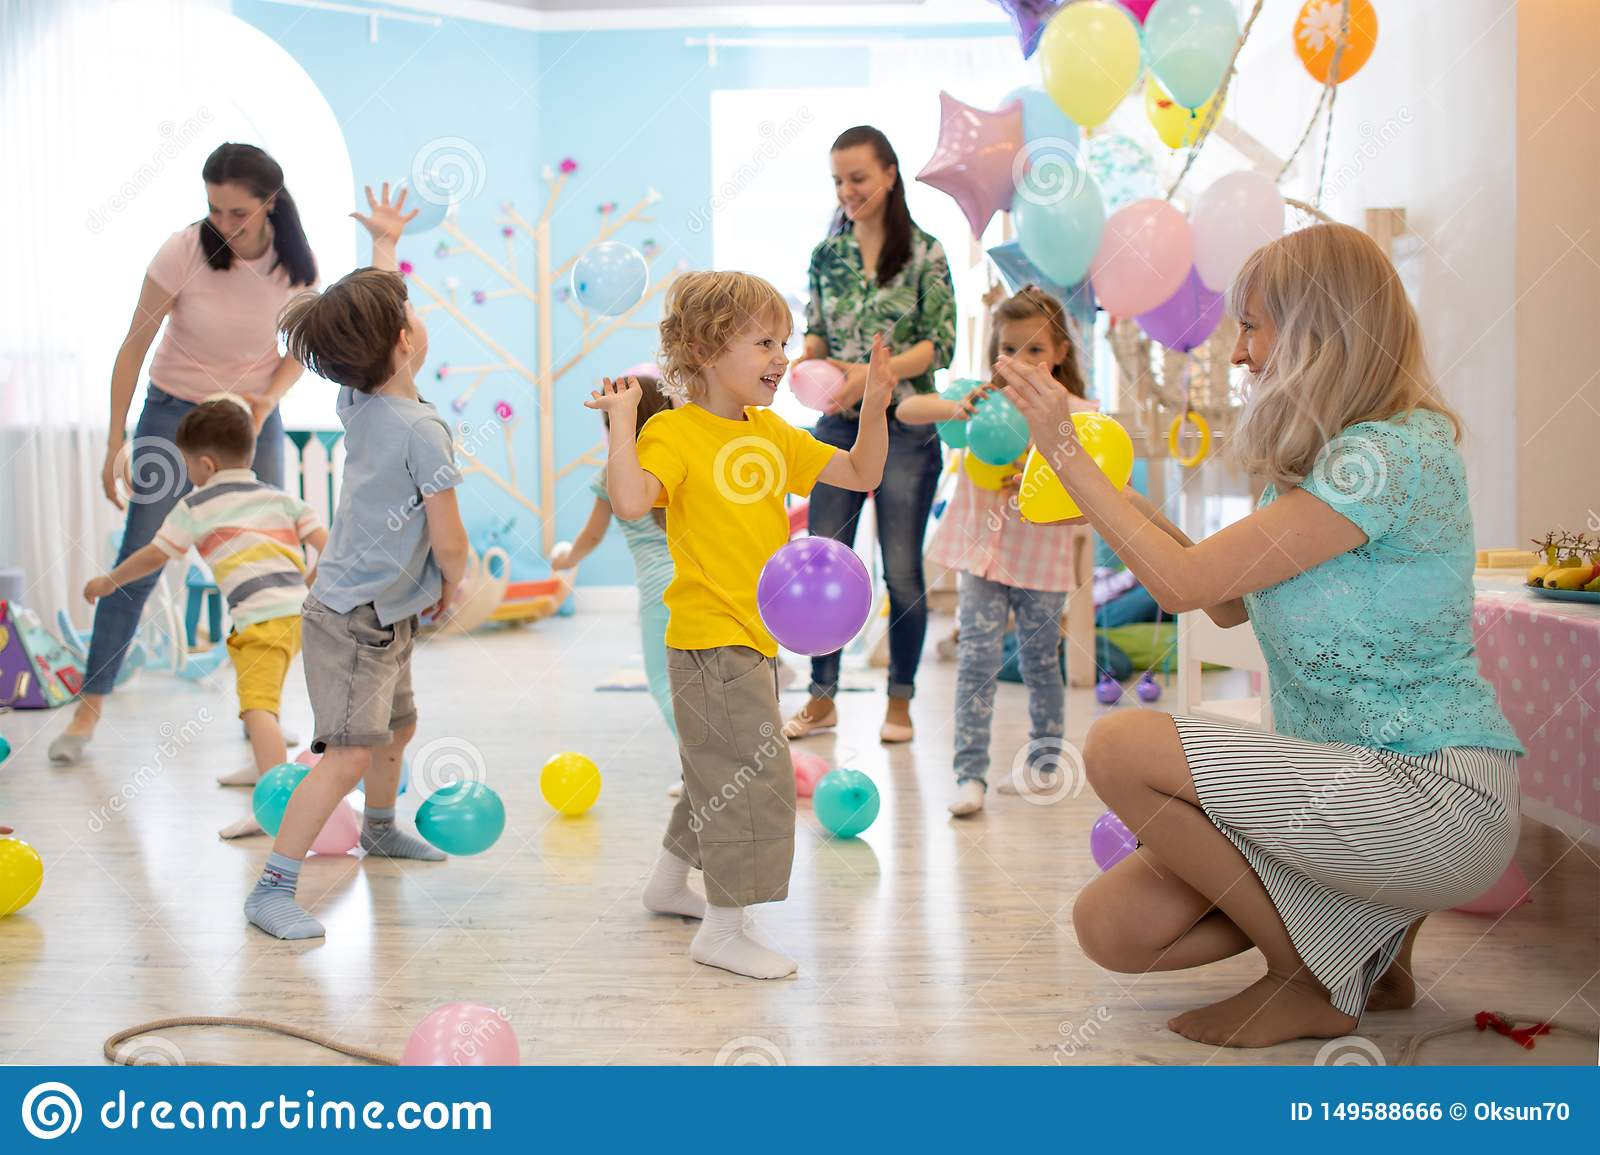 Joyful kids and their parents entertain and have fun with color balloon on birthday party